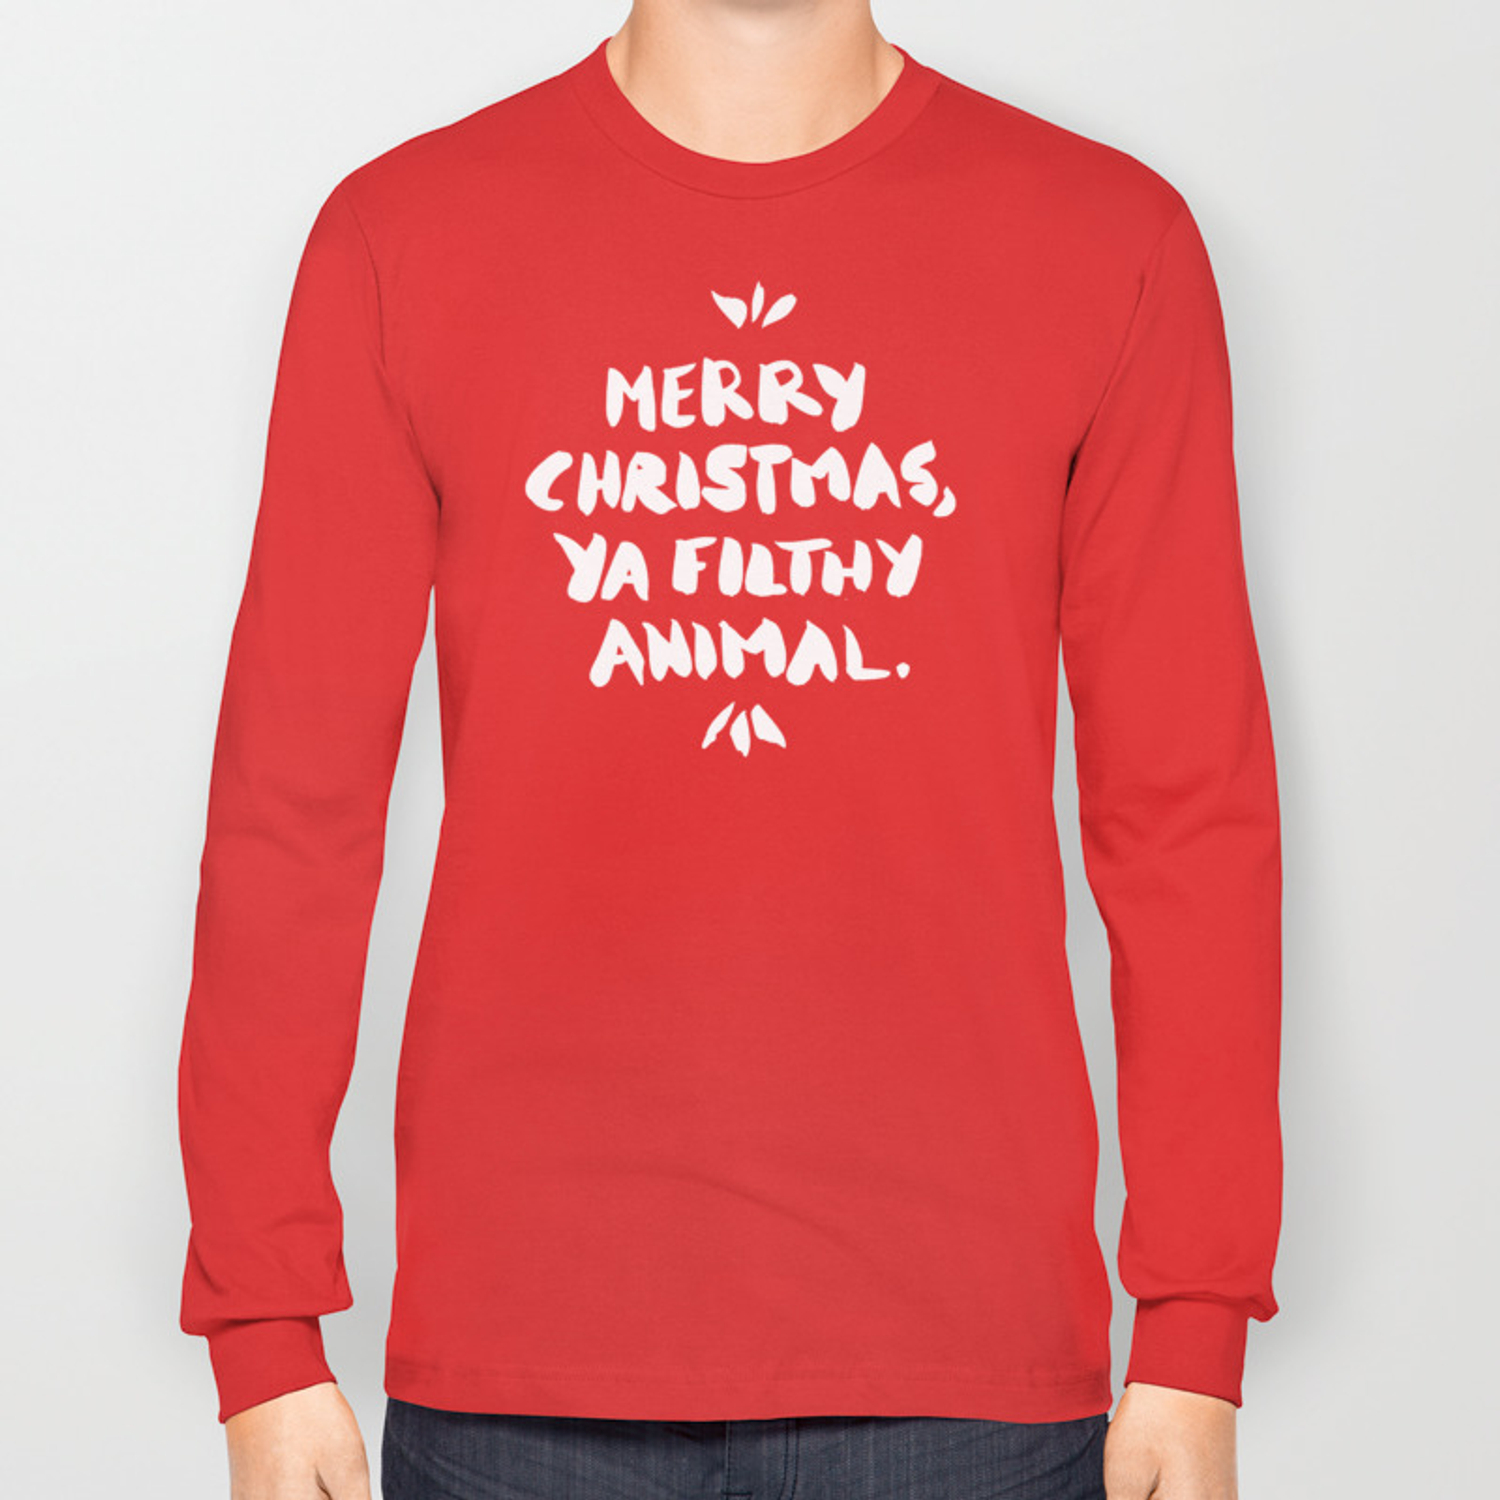 94be4c93f Merry Christmas, Ya Filthy Animal – Red Long Sleeve T-shirt by catcoq    Society6